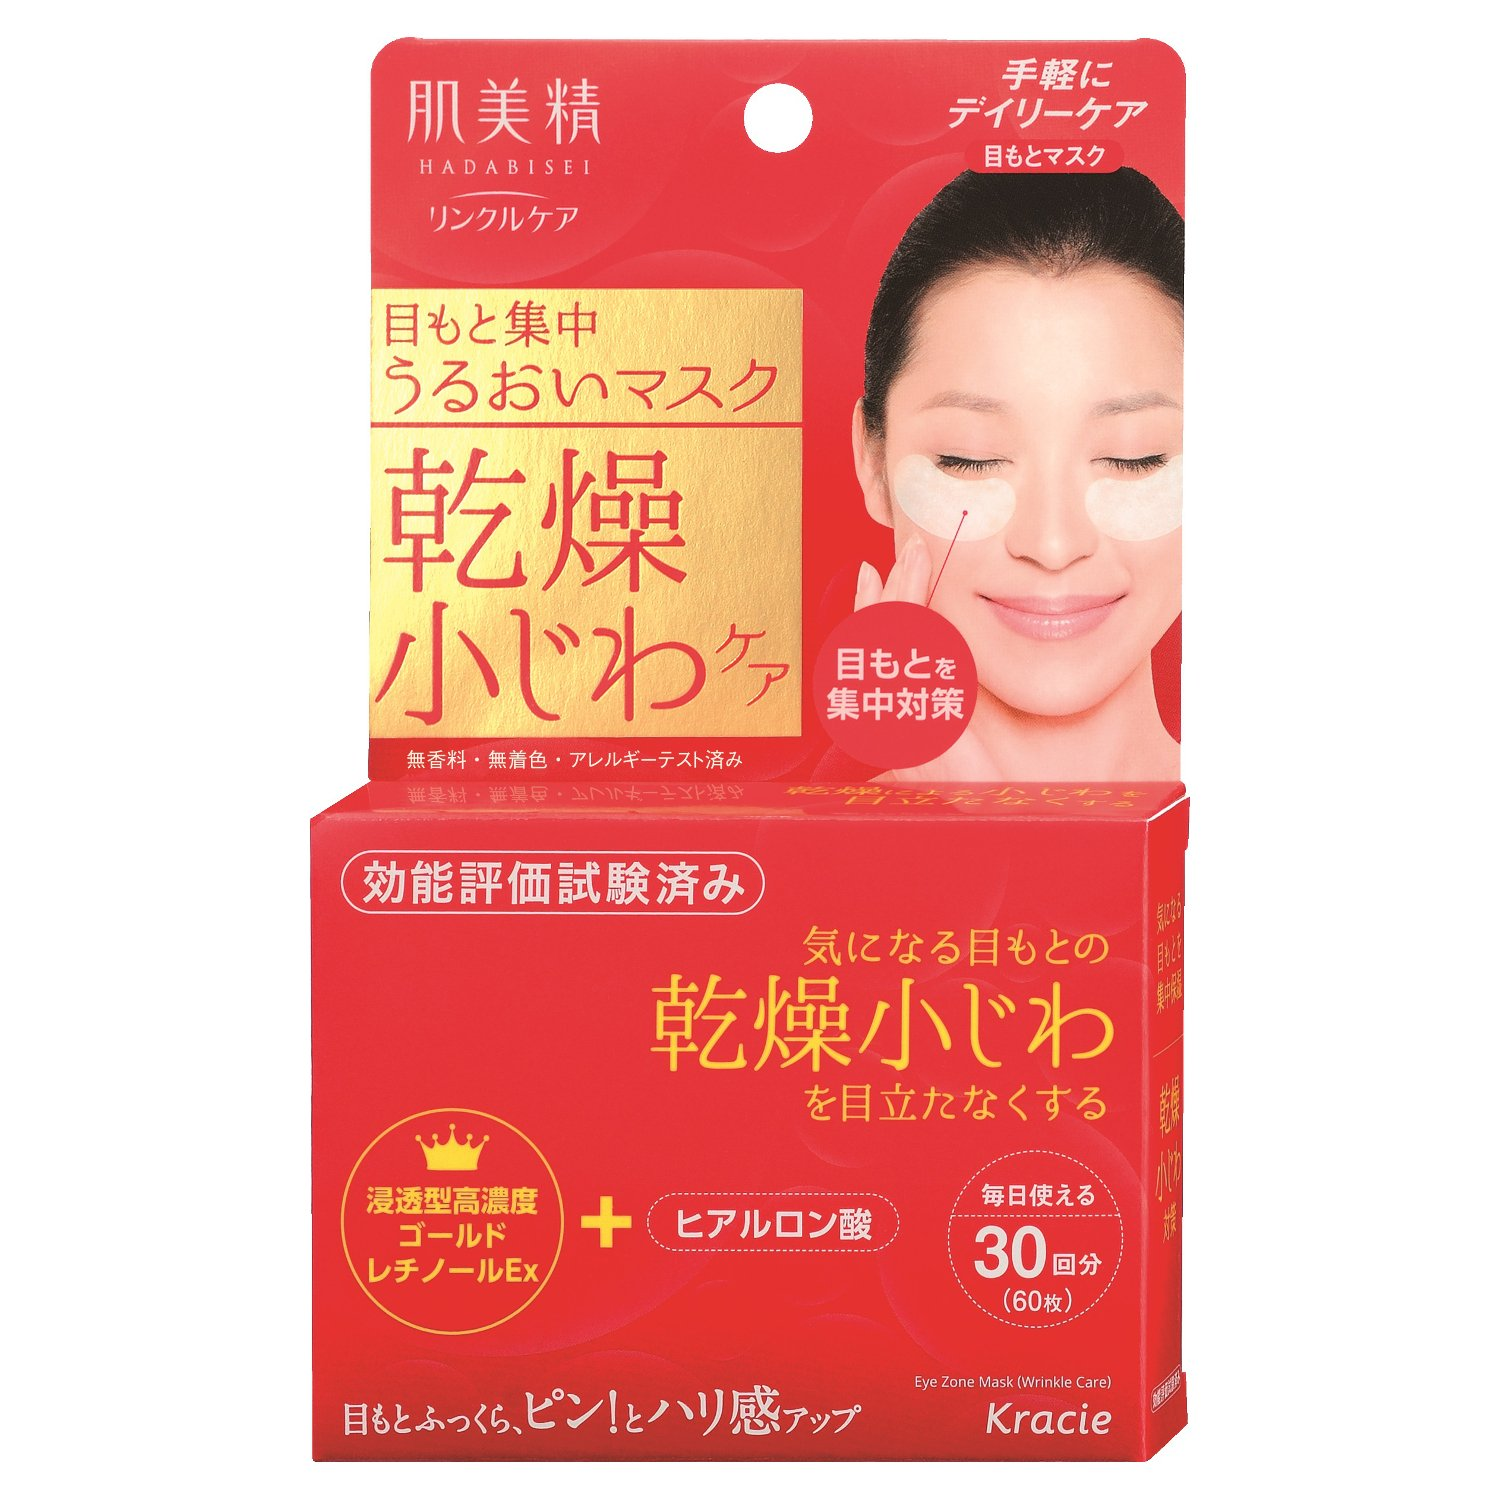 KRACIE Hadabisei Eye Zone Intensive Wrinkle Care Pack, 0.5 Pound Simple Deluxe - Beauty BU02P01075